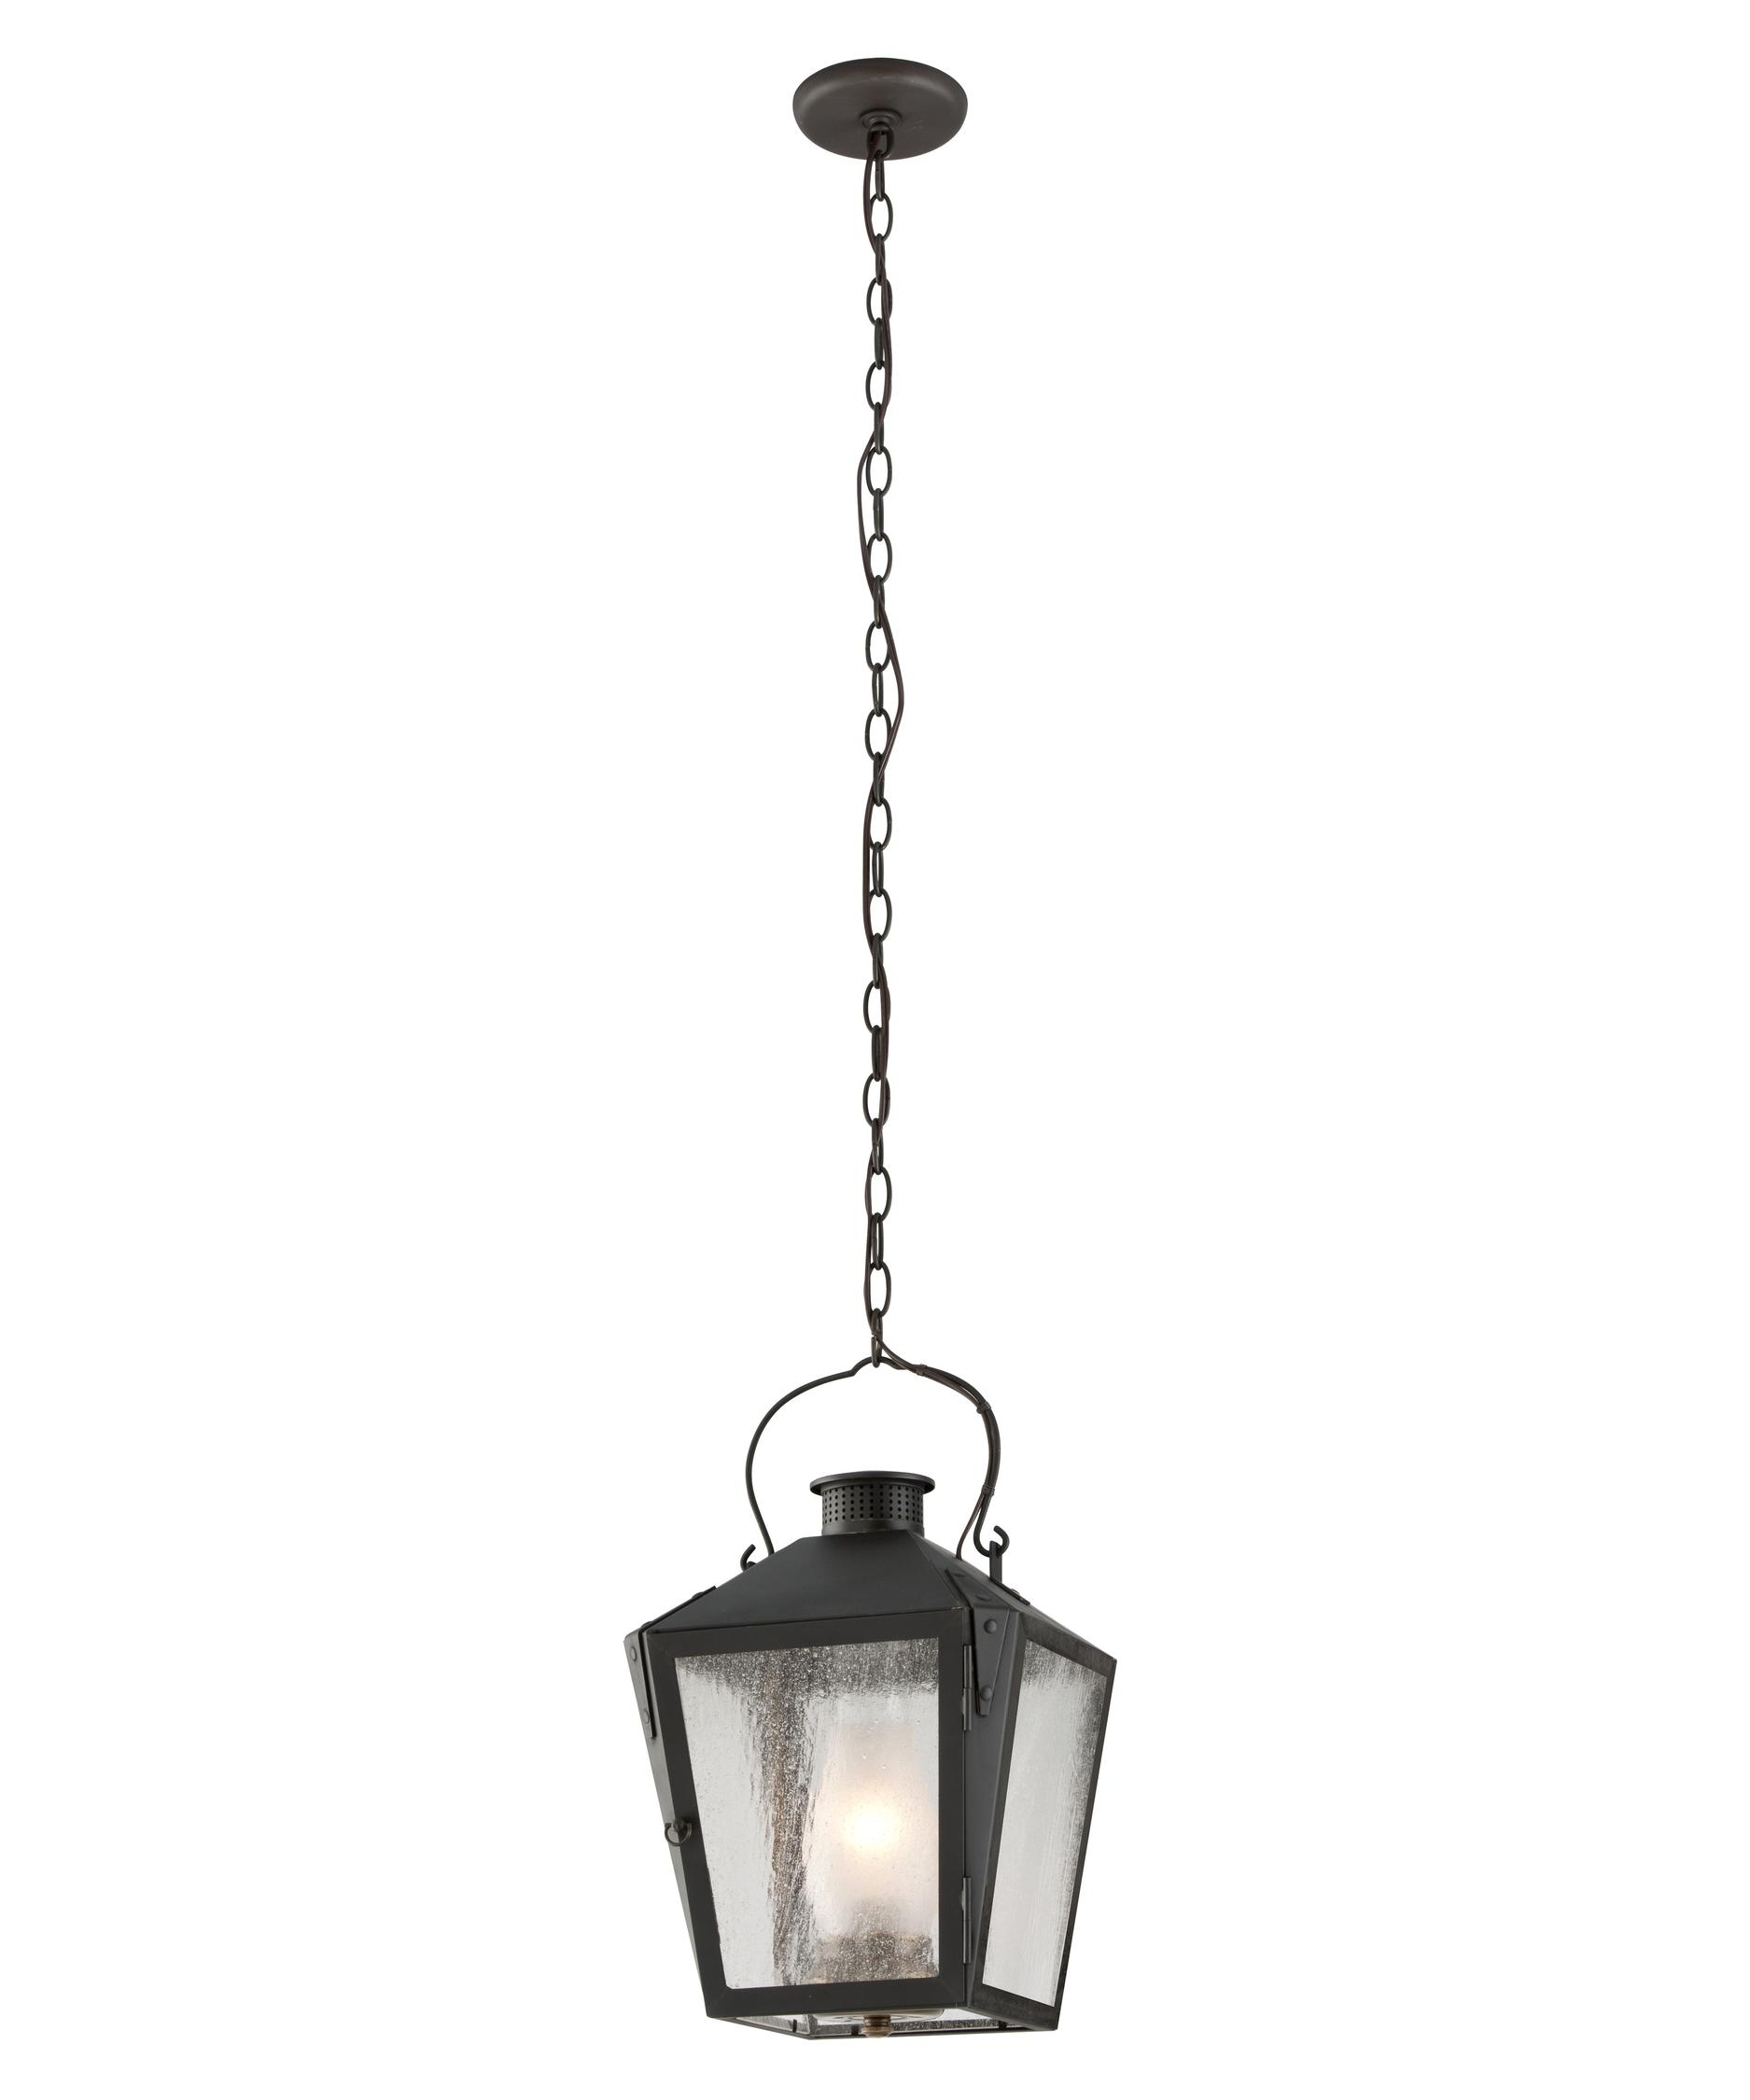 Troy Lighting F3766 Nantucket 11 Inch Wide 1 Light Outdoor Hanging Throughout Most Recently Released Nantucket Outdoor Lanterns (View 17 of 20)